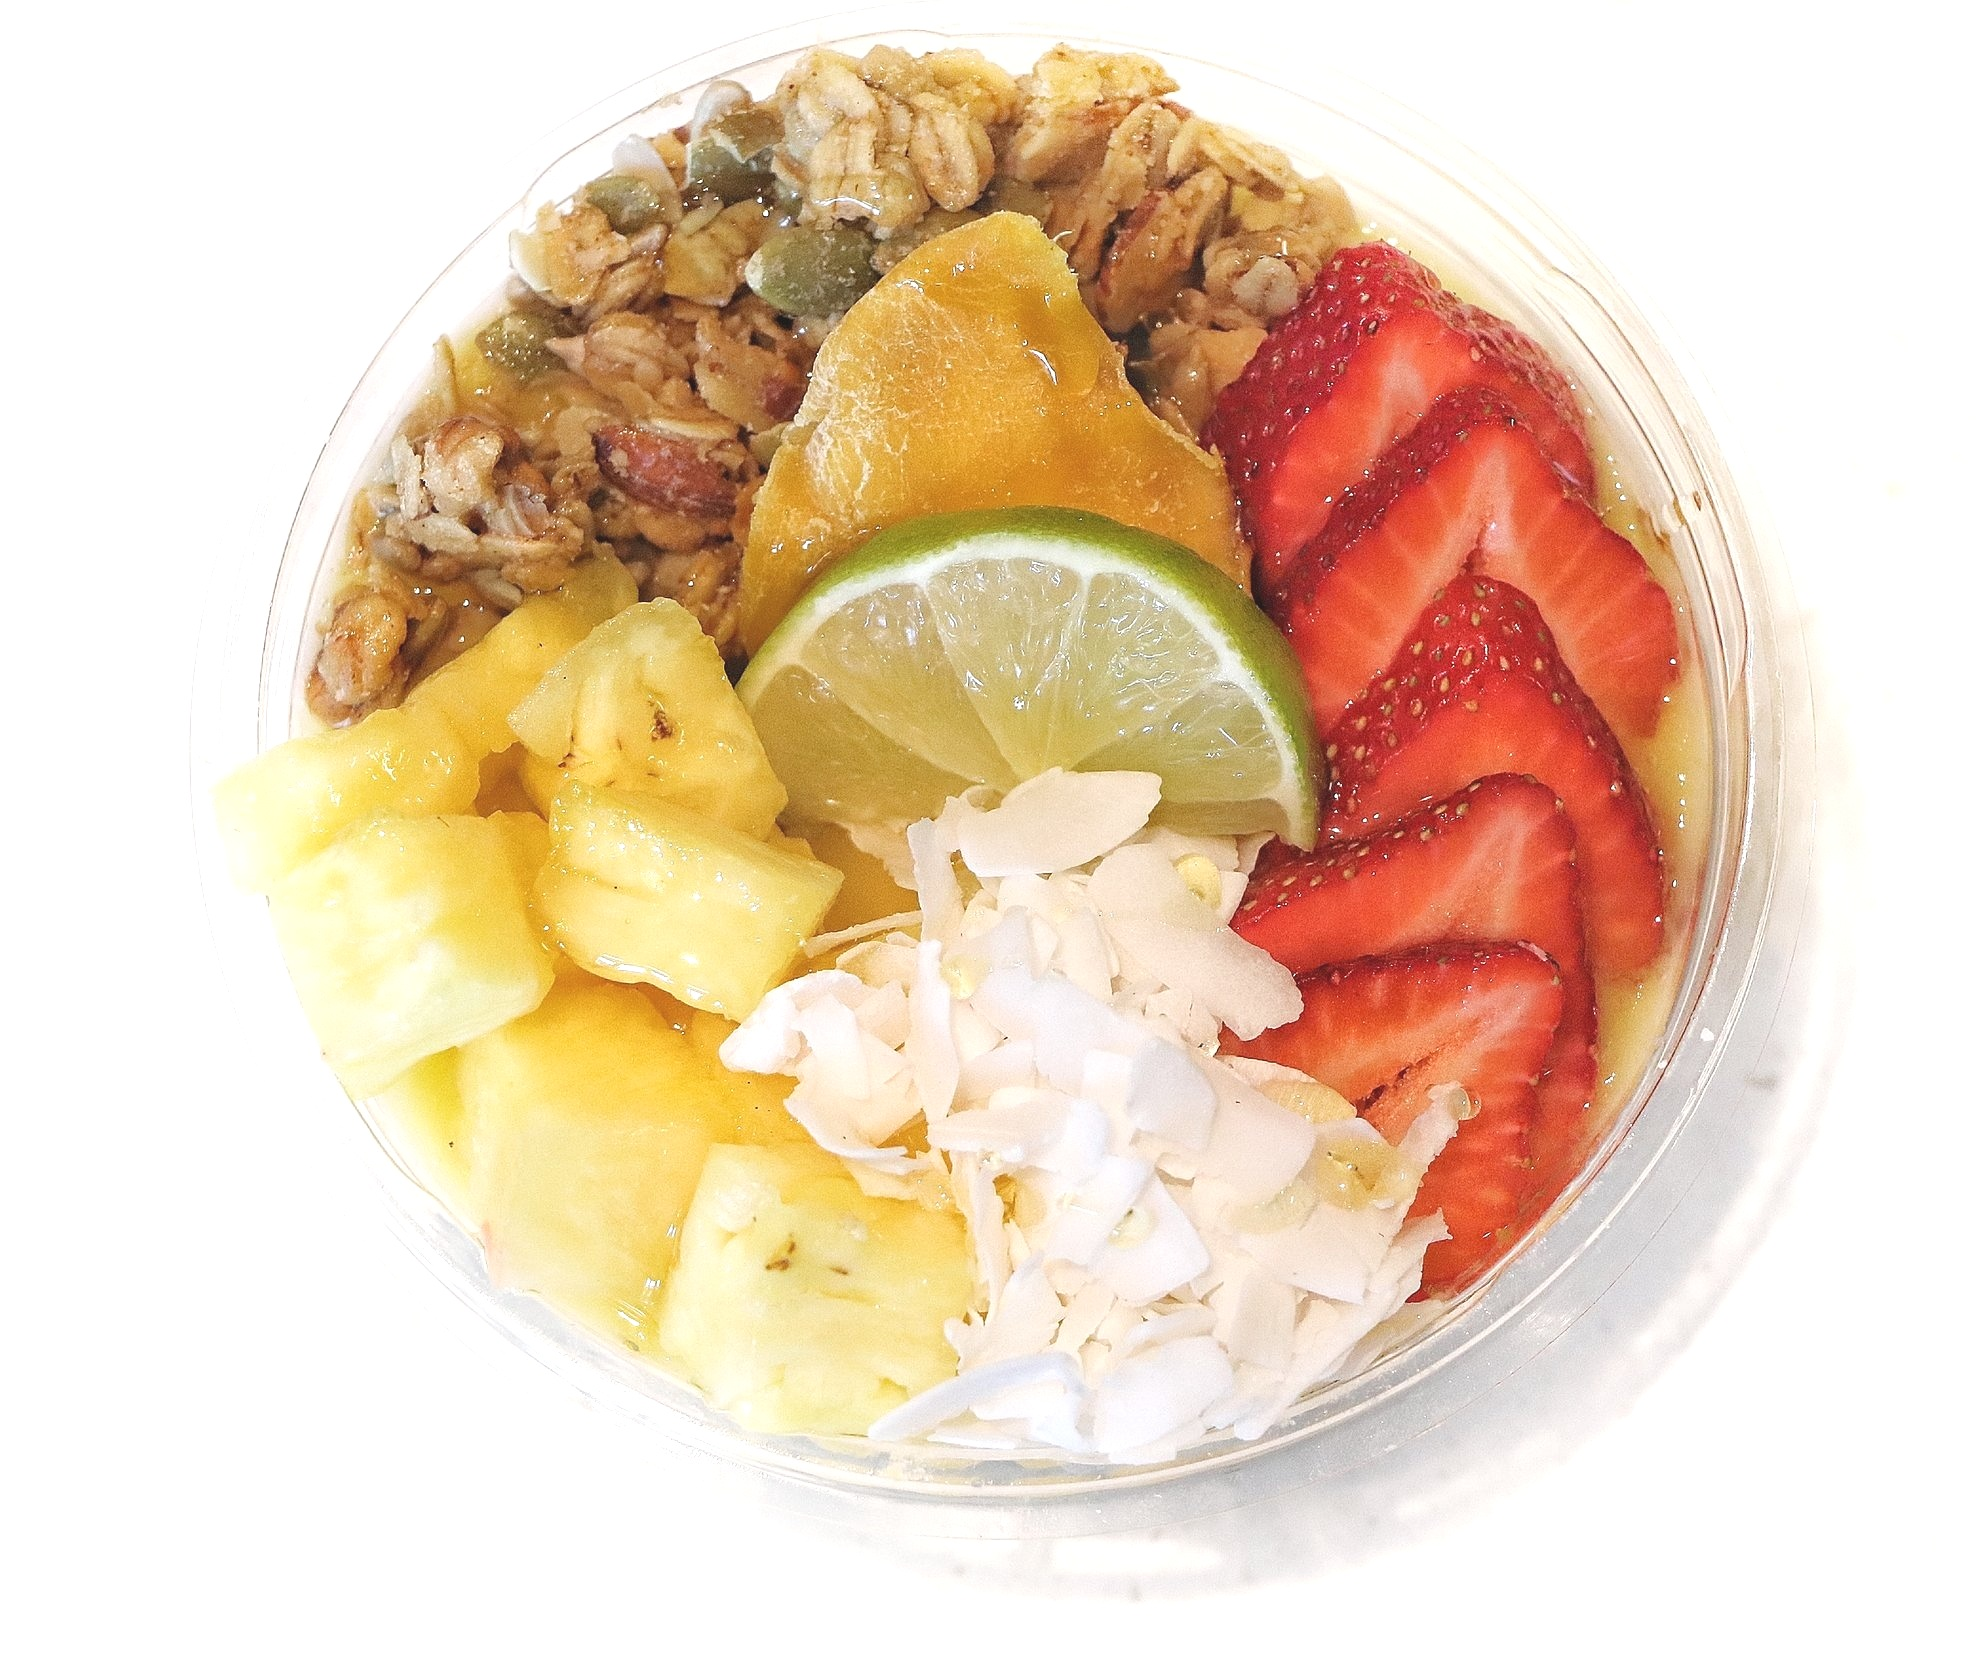 Mango Tango:  Mango / Pineapple / Lime / Coconut Water  Topped with Granoa, Pineapple, Strawberry, Coconut, Lime Wedge, Drizzle of Honey, Dried Mango